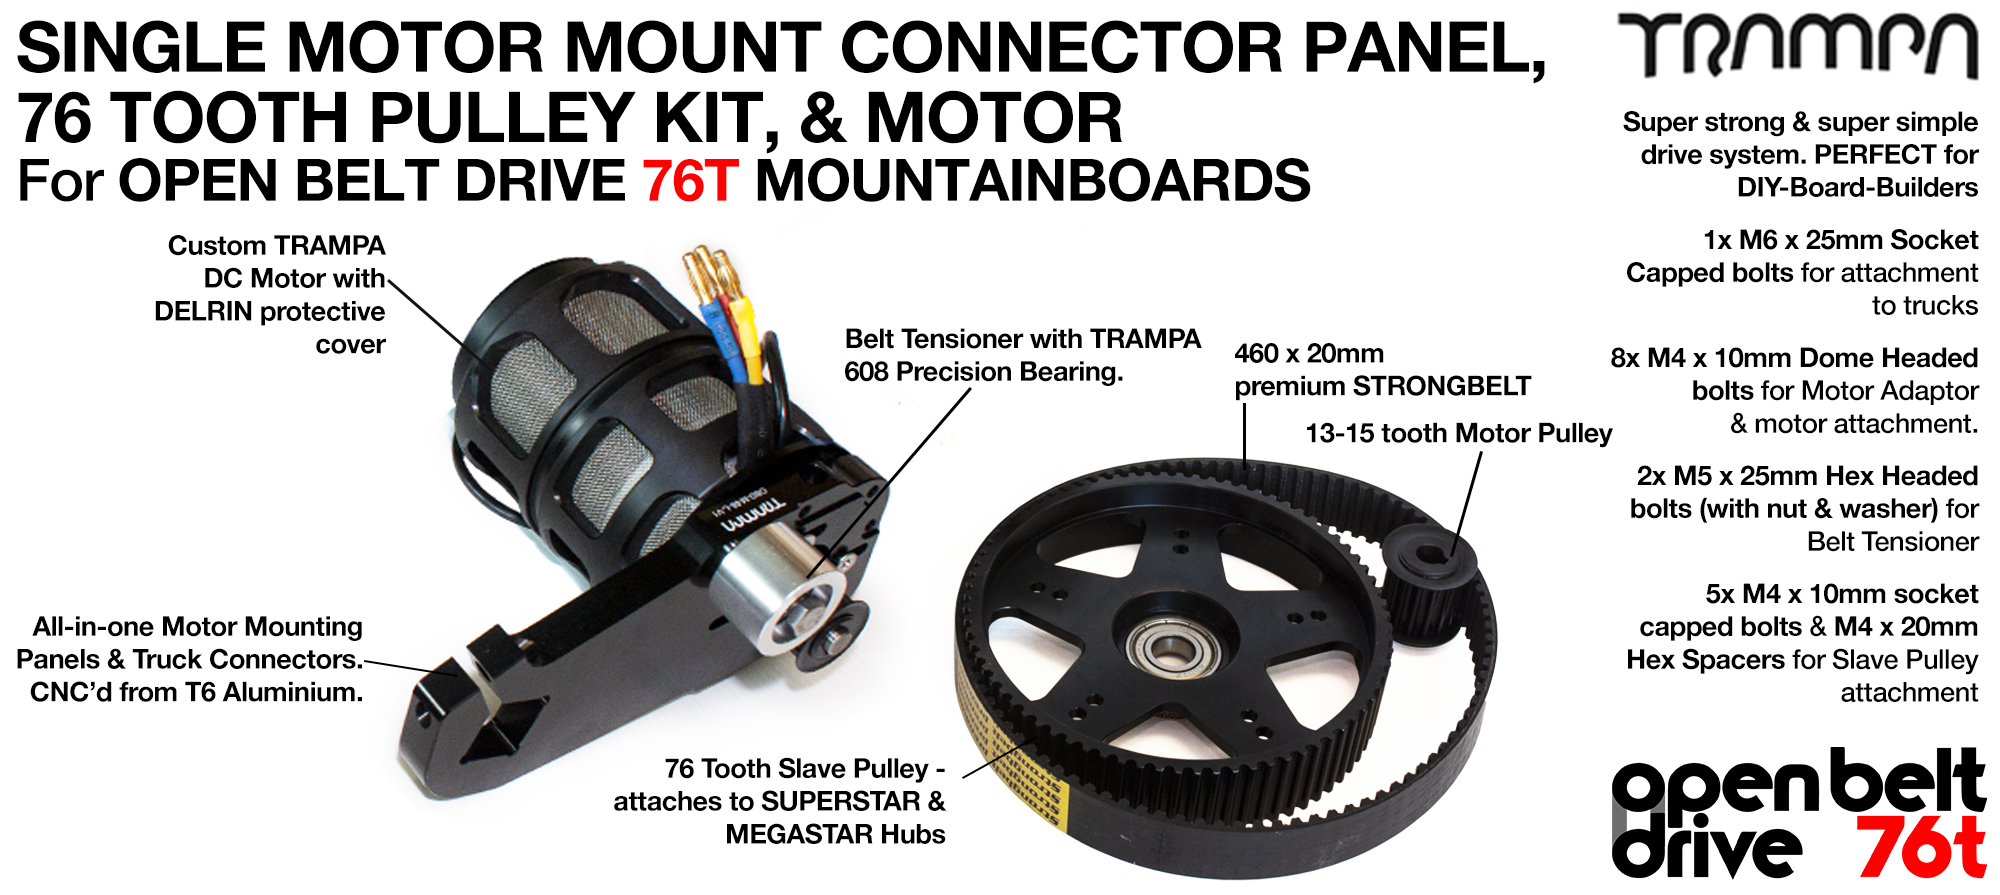 76T OPEN BELT DRIVE Motor Mount & 76T Pulley Kit with MOTOR & Filters - SINGLE